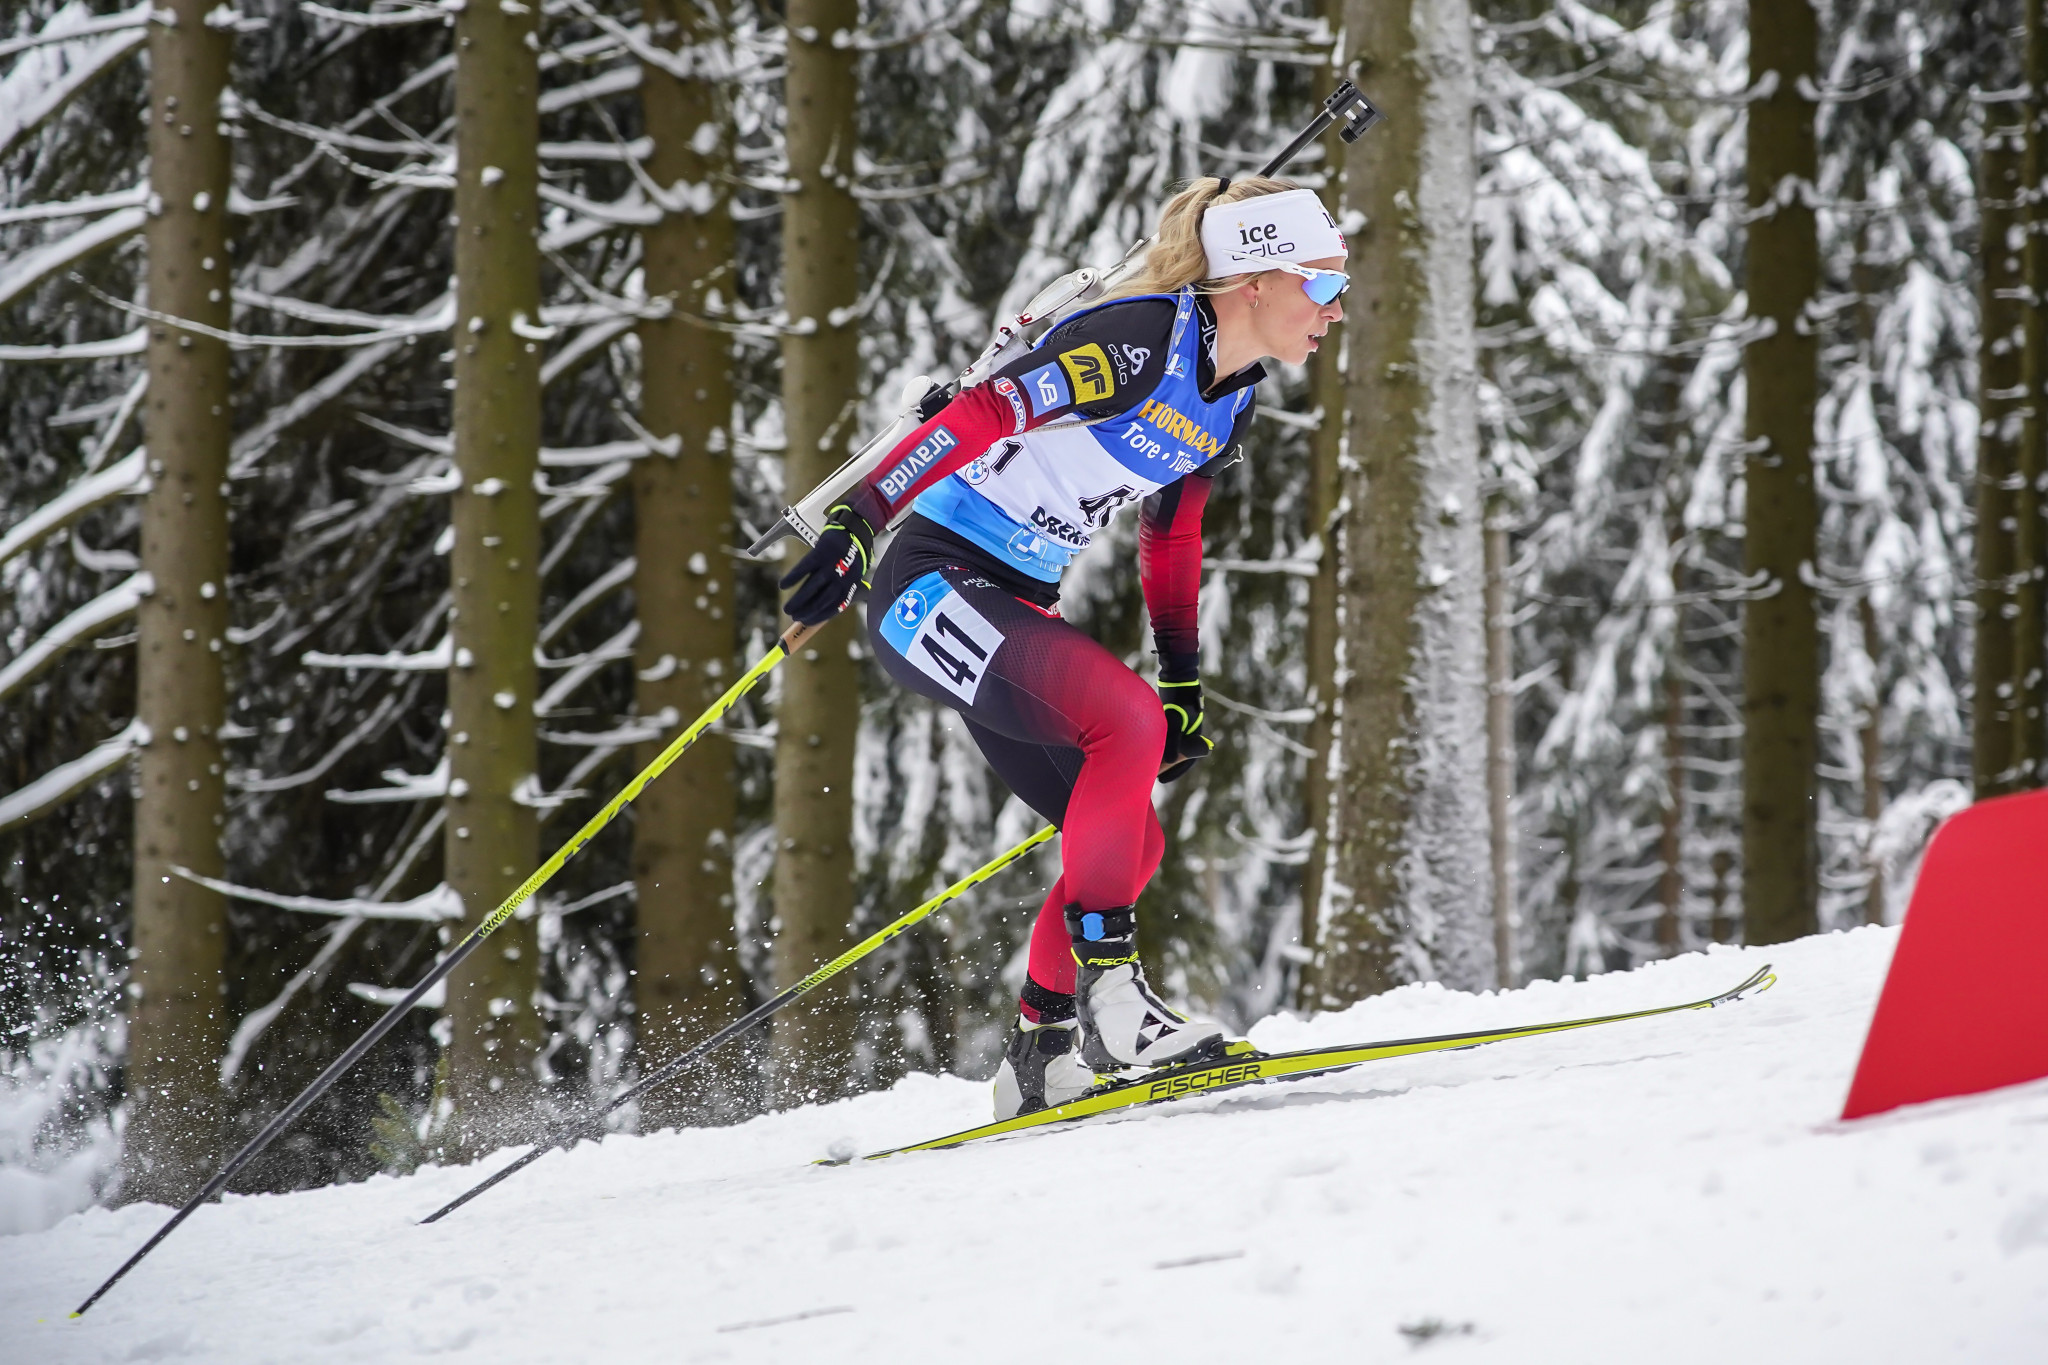 Eckhoff sprints to third successive victory at IBU World Cup in Oberhof